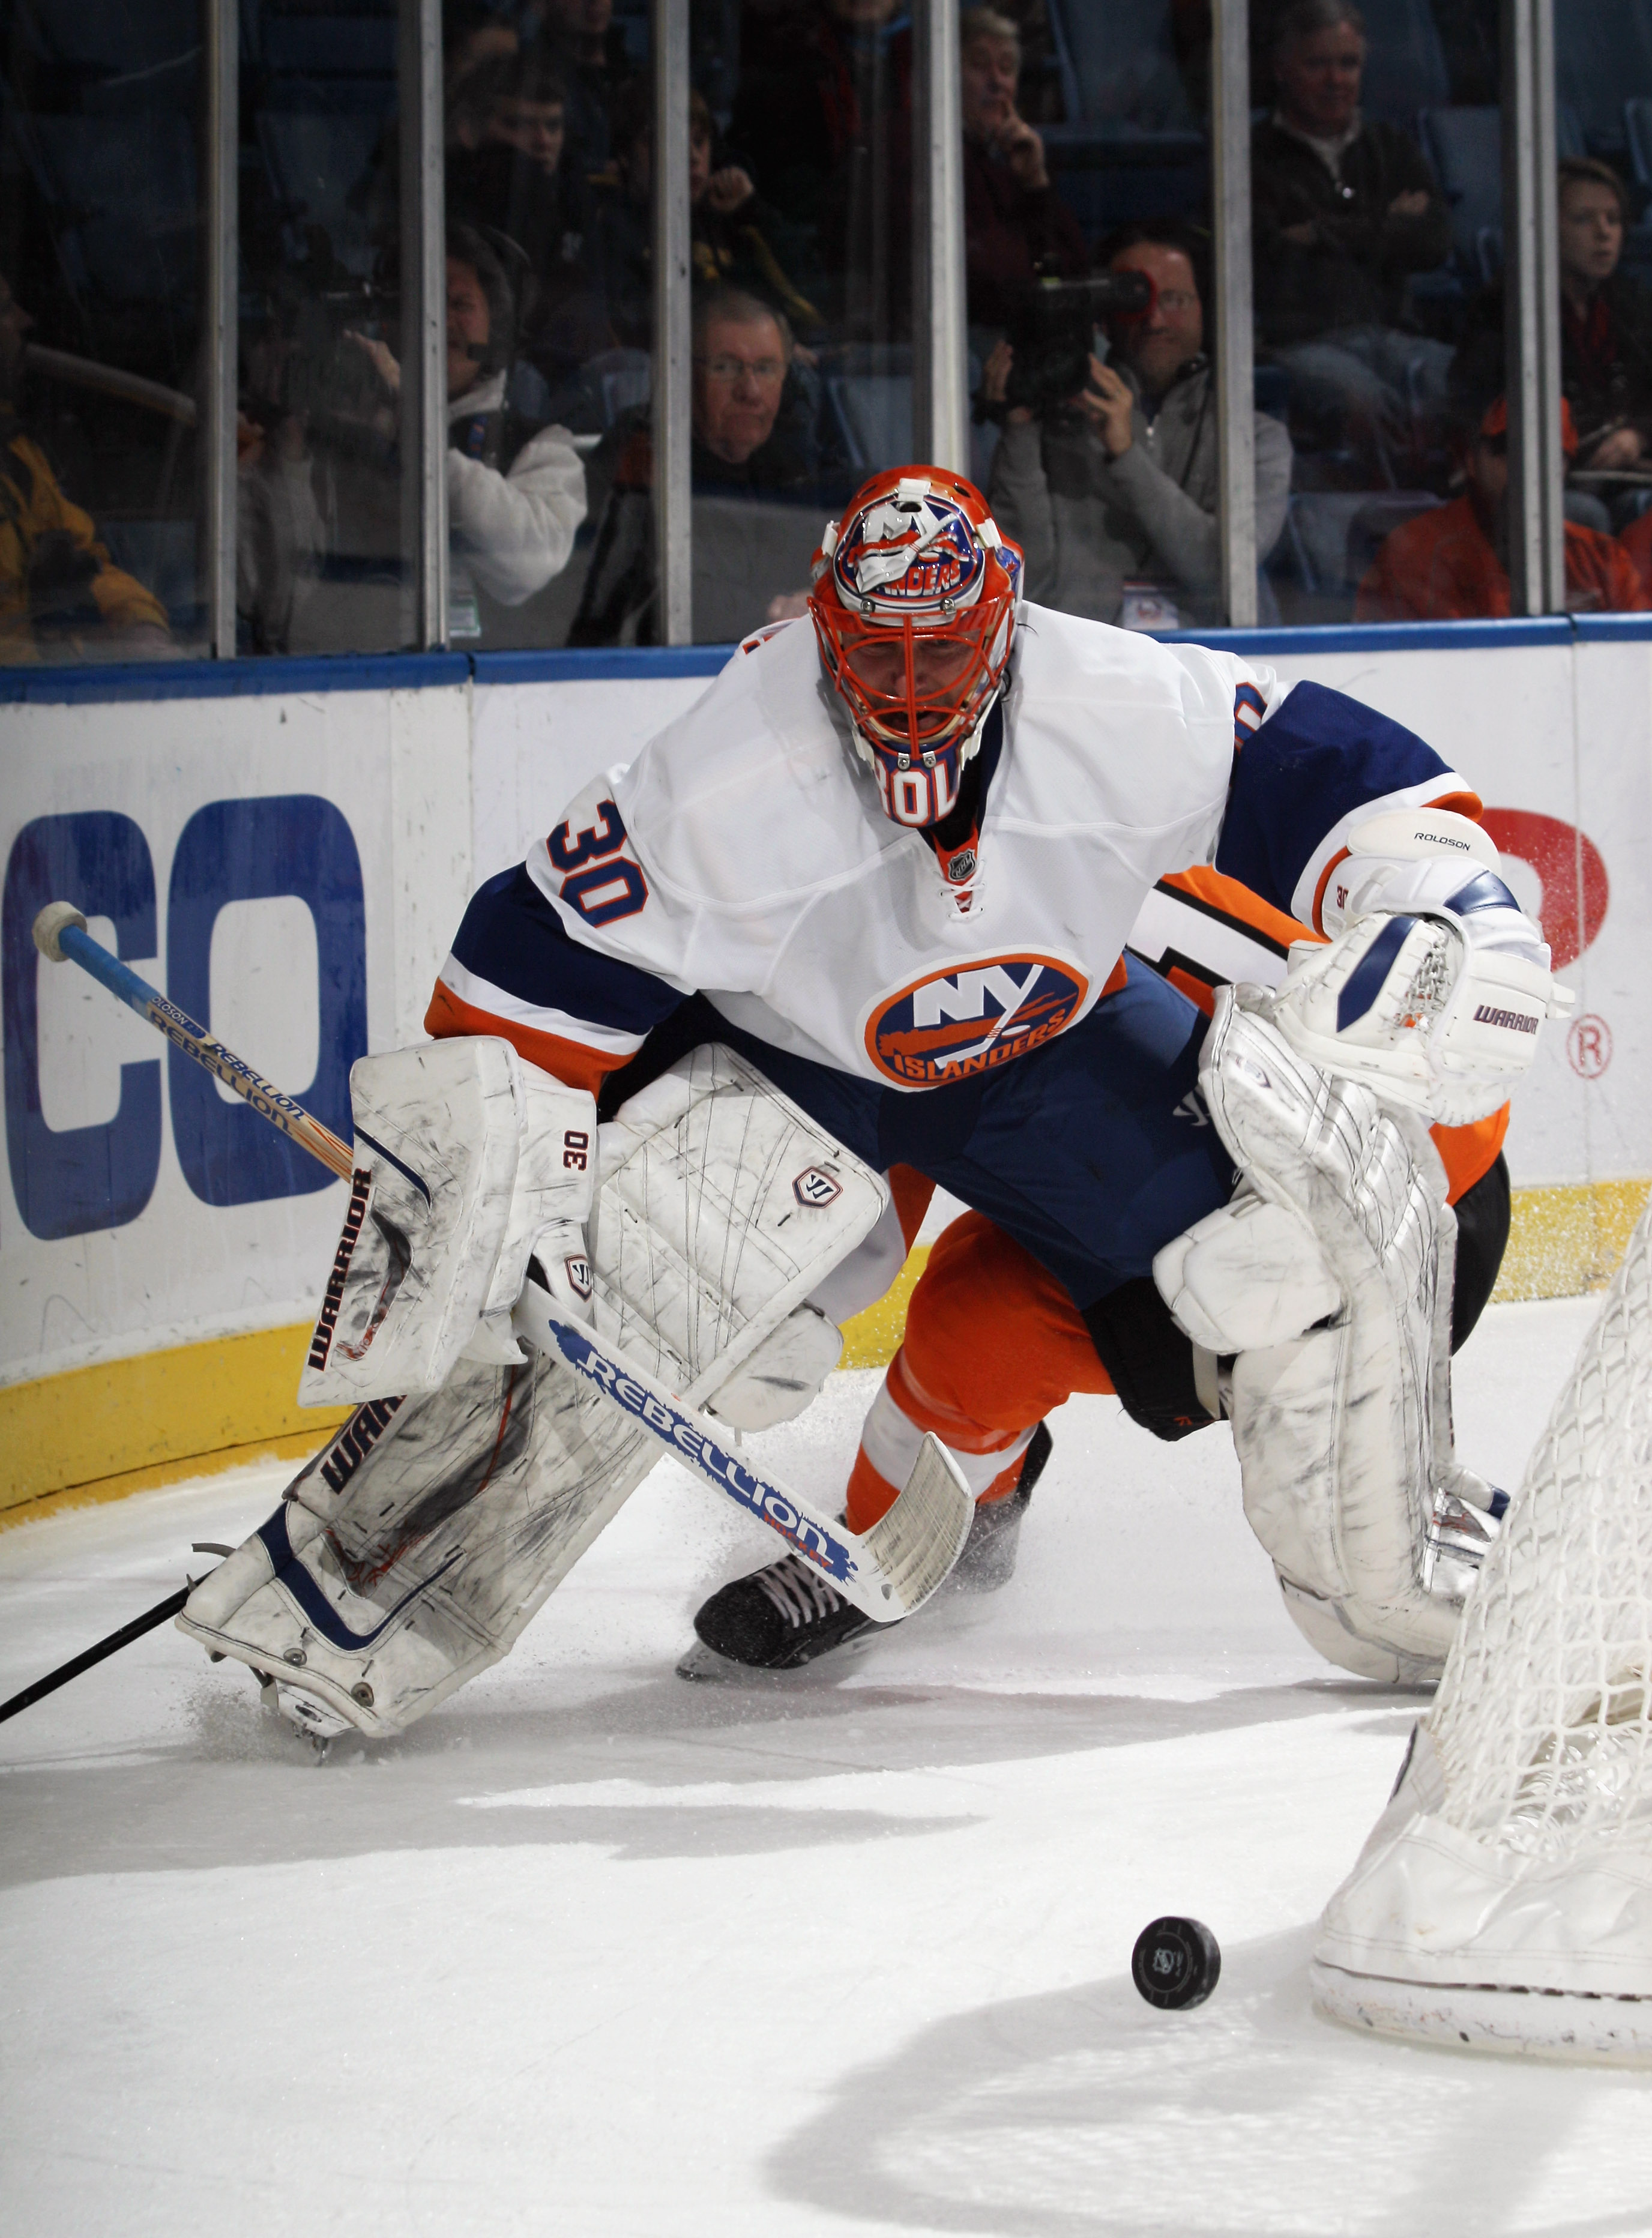 UNIONDALE, NY - DECEMBER 05: Dwayne Roloson #30 of the New York Islanders plays the puck against teh Philadelphia Flyers at the Nassau Coliseum on December 5, 2010 in Uniondale, New York.  (Photo by Bruce Bennett/Getty Images)